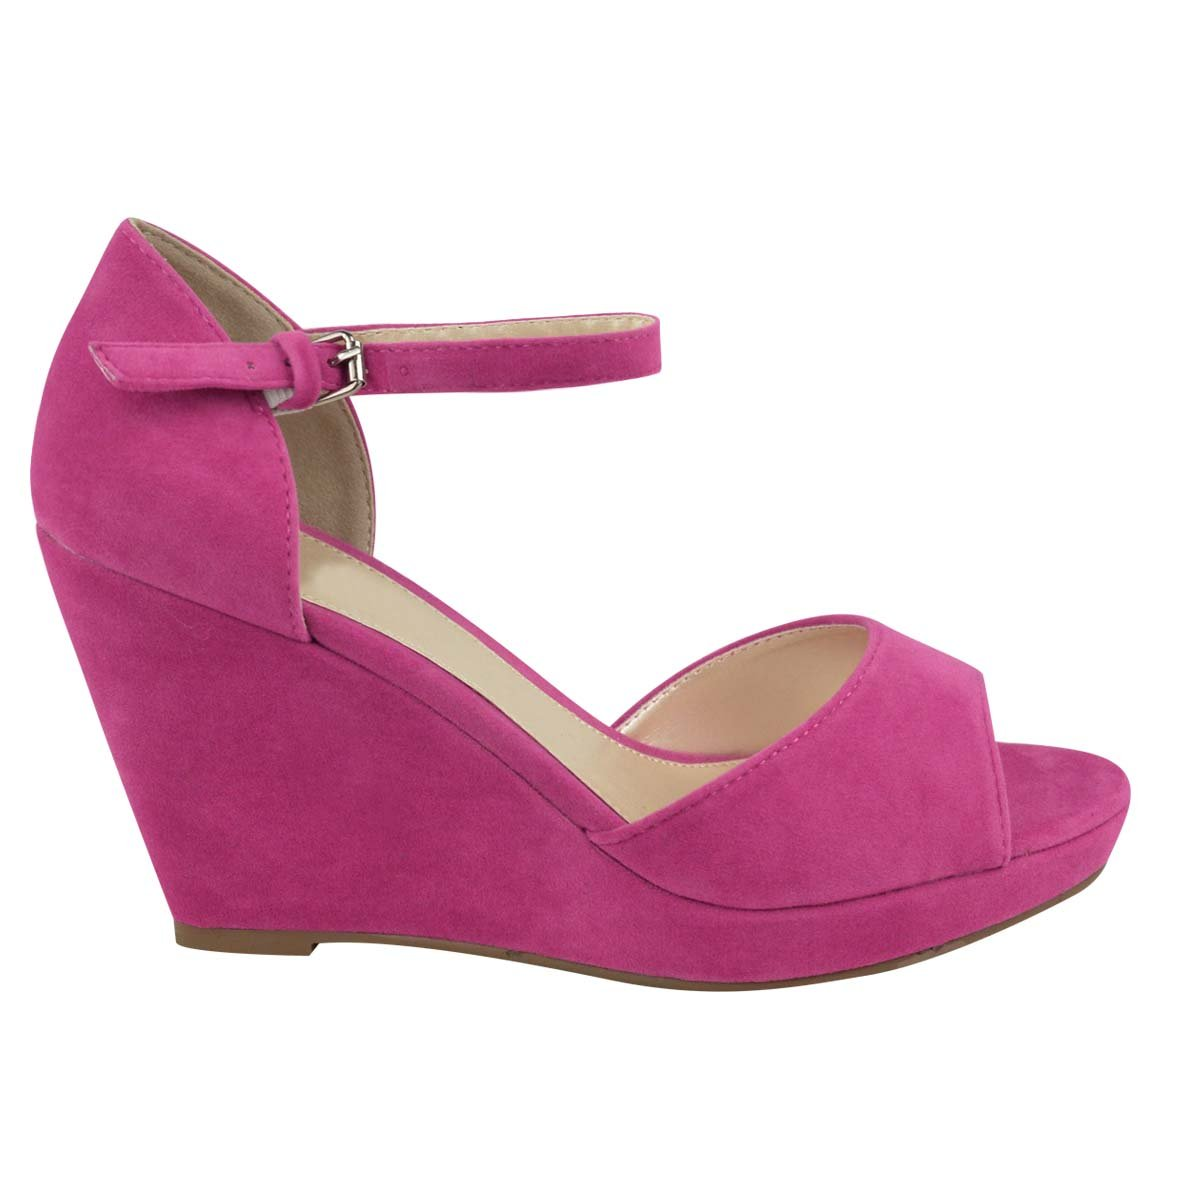 75dae8e5ab7a Fashion Thirsty Womens Peep Toe Wedges Low Mid High Heel Platform Summer  Ankle Strap Strappy Shoes Size